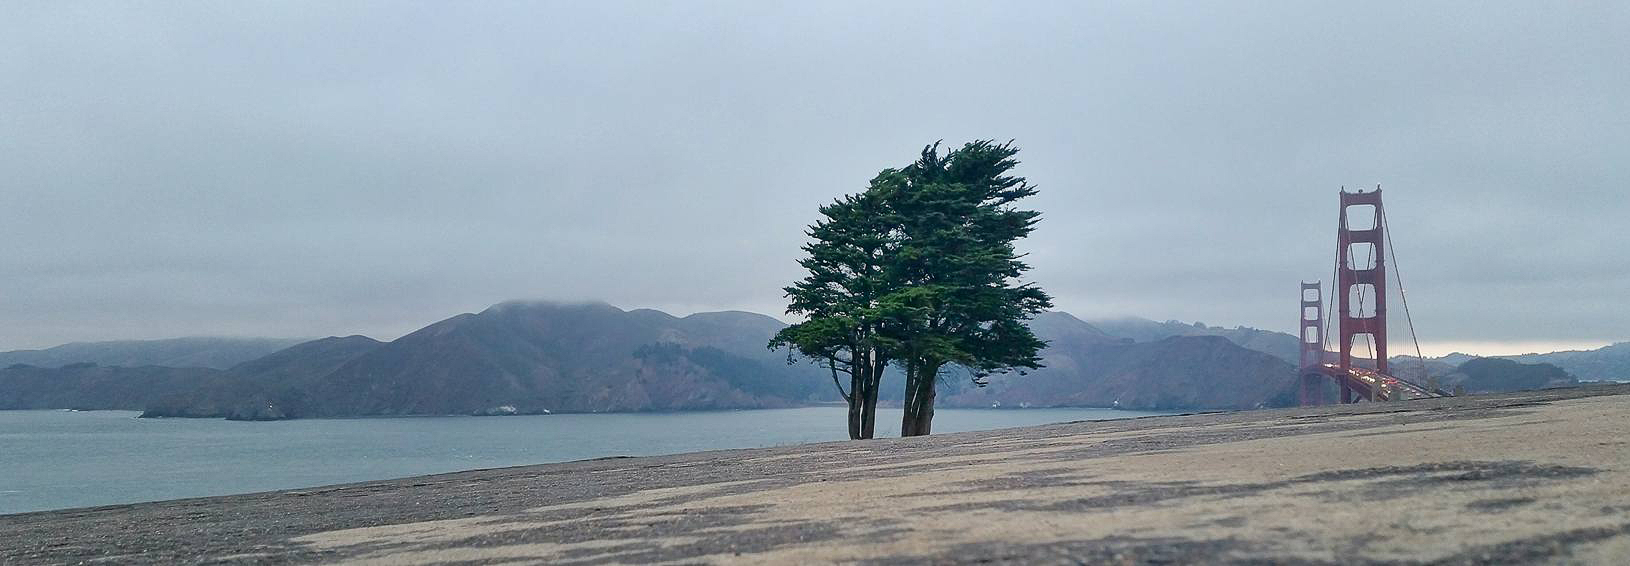 Lone Tree at Golden Gate with Photographer